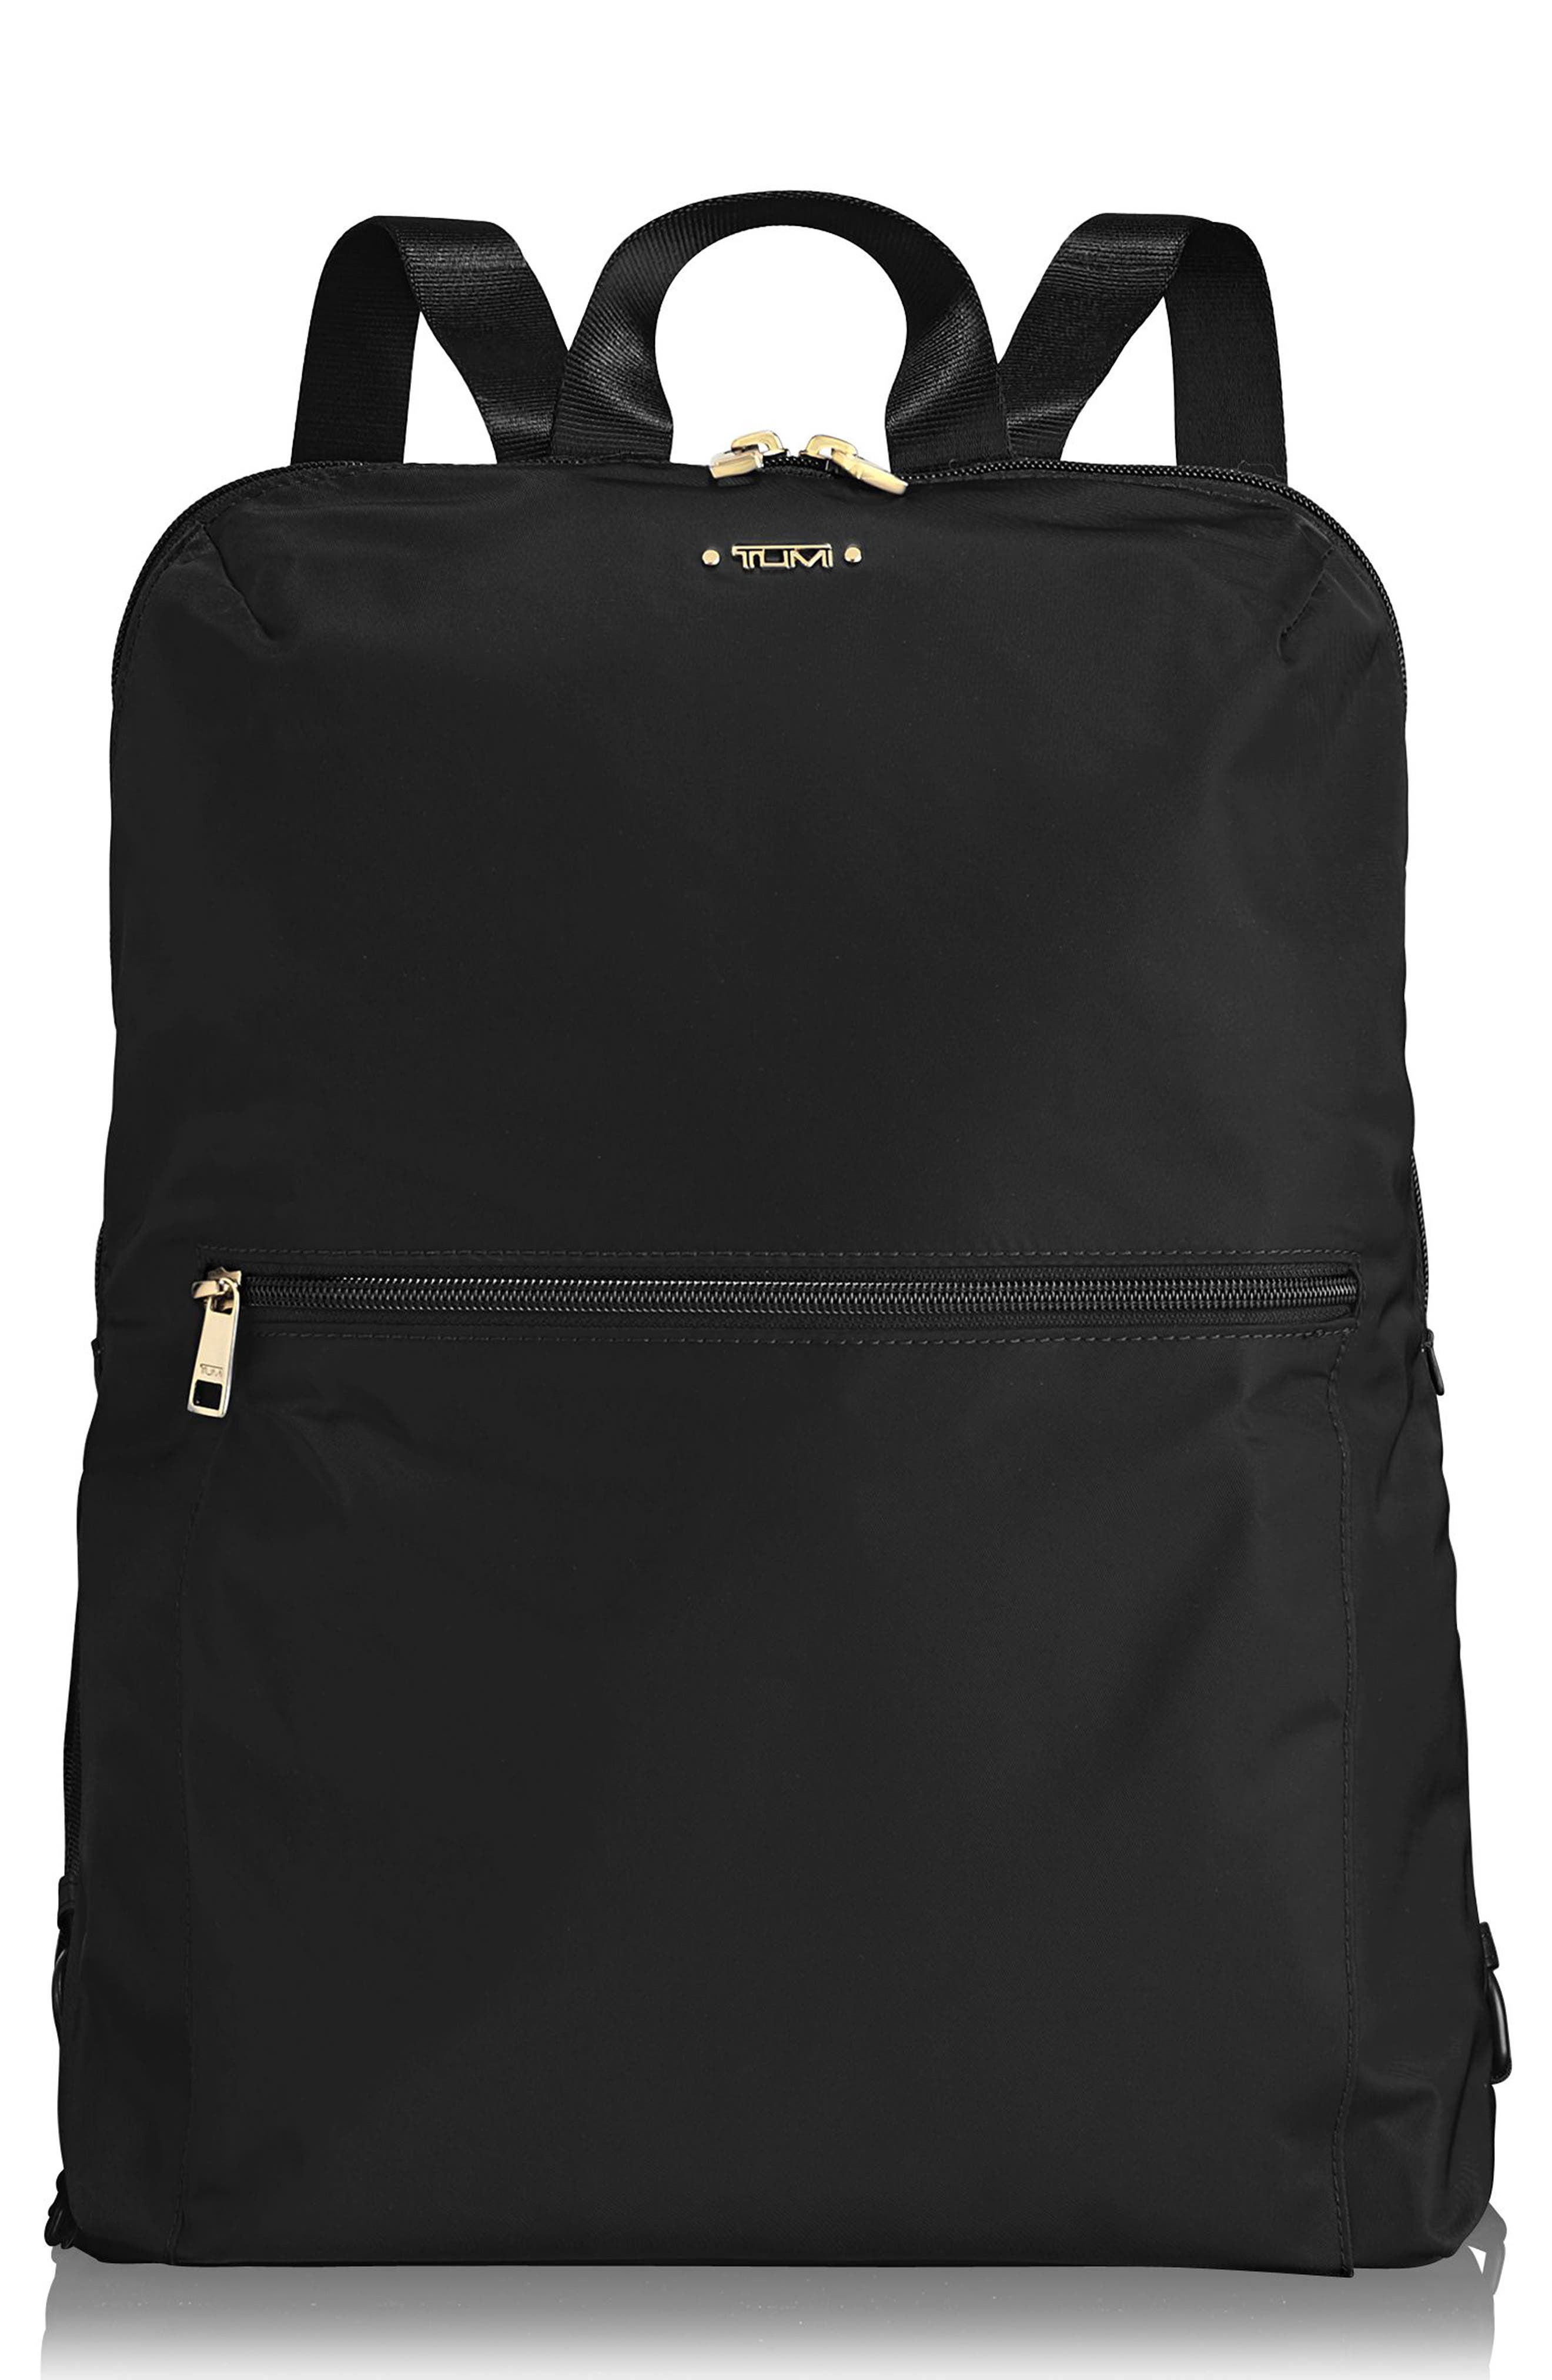 TUMI Voyageur - Just in Case Nylon Travel Backpack, Main, color, 001